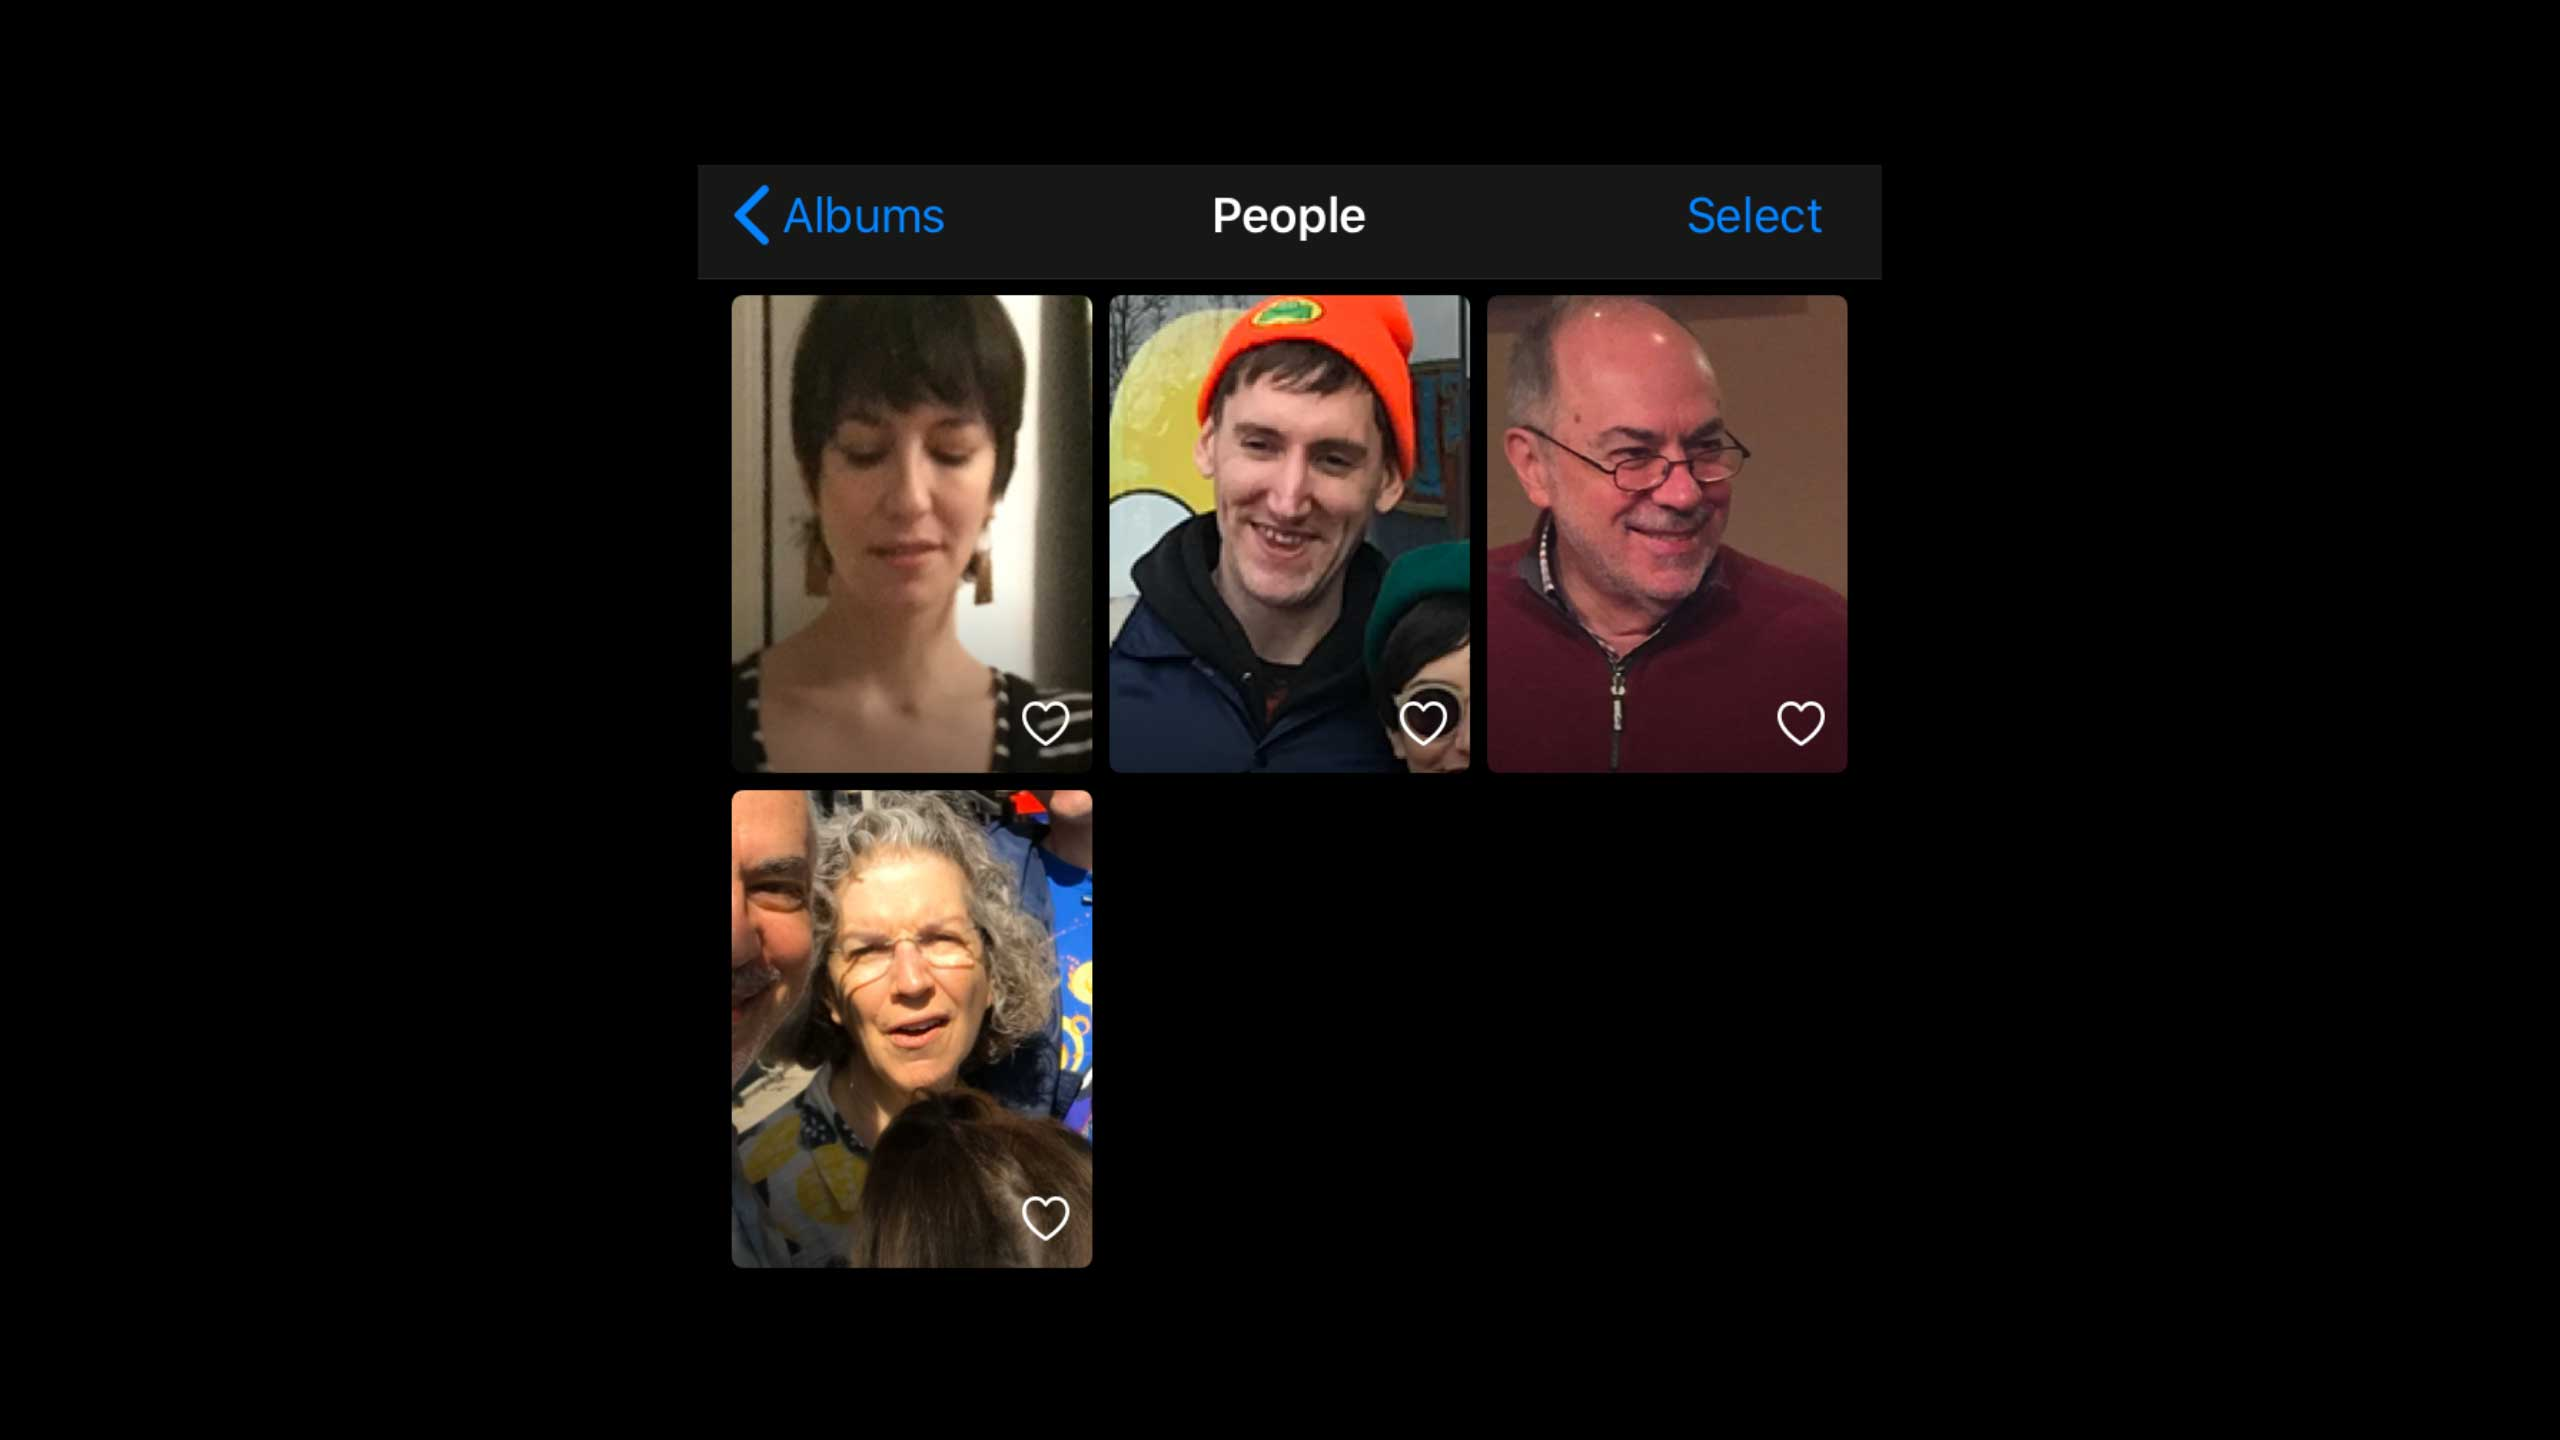 The author's iPhone's Photos app interface shows four cropped images of faces